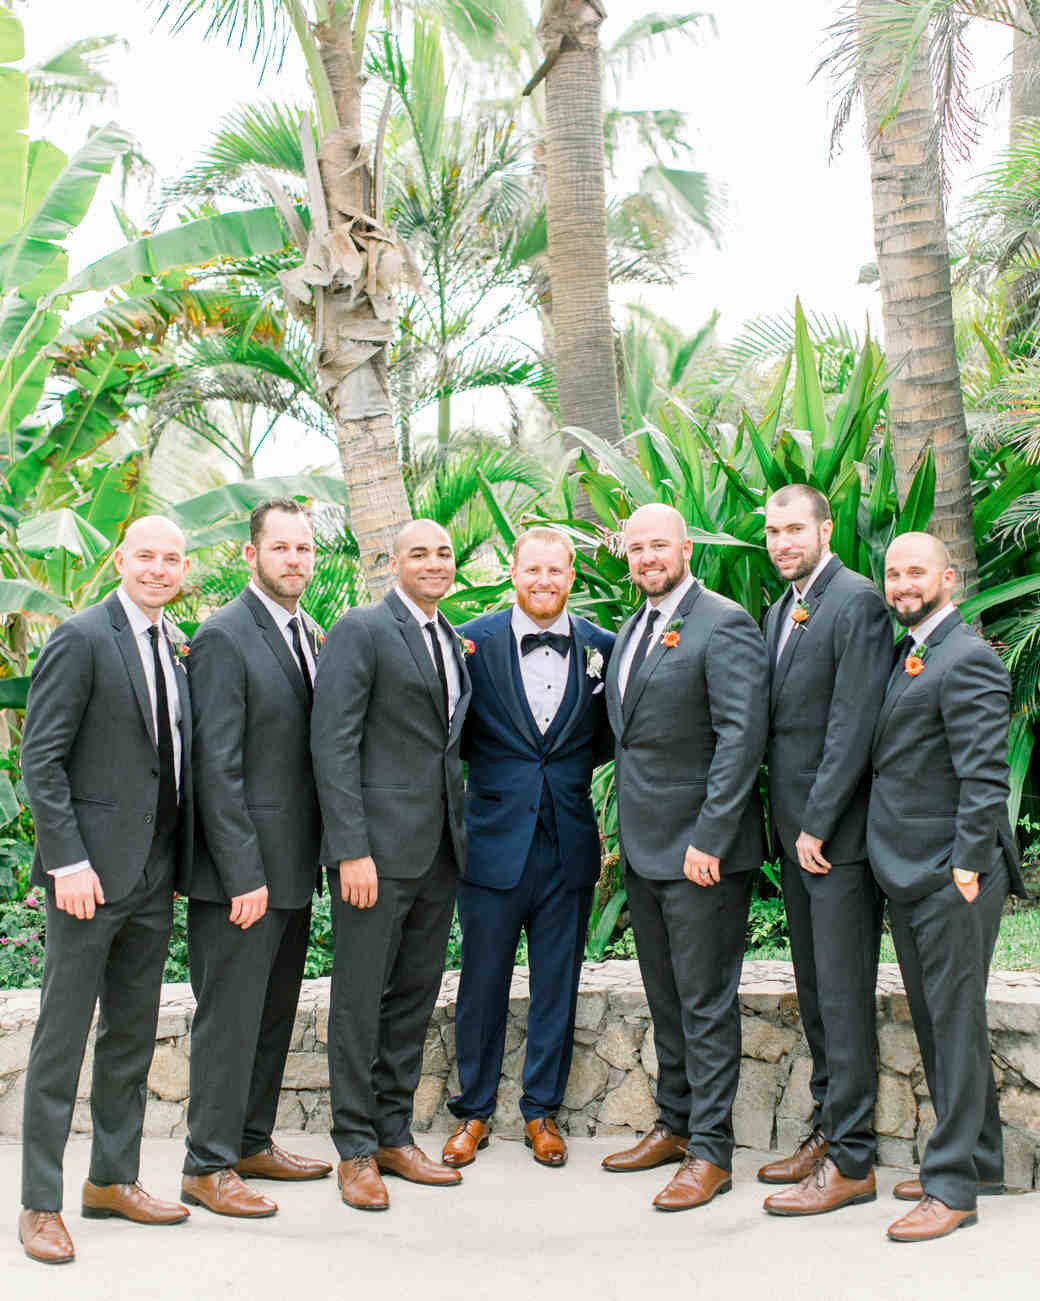 kourtney justin wedding mexico groomsmen